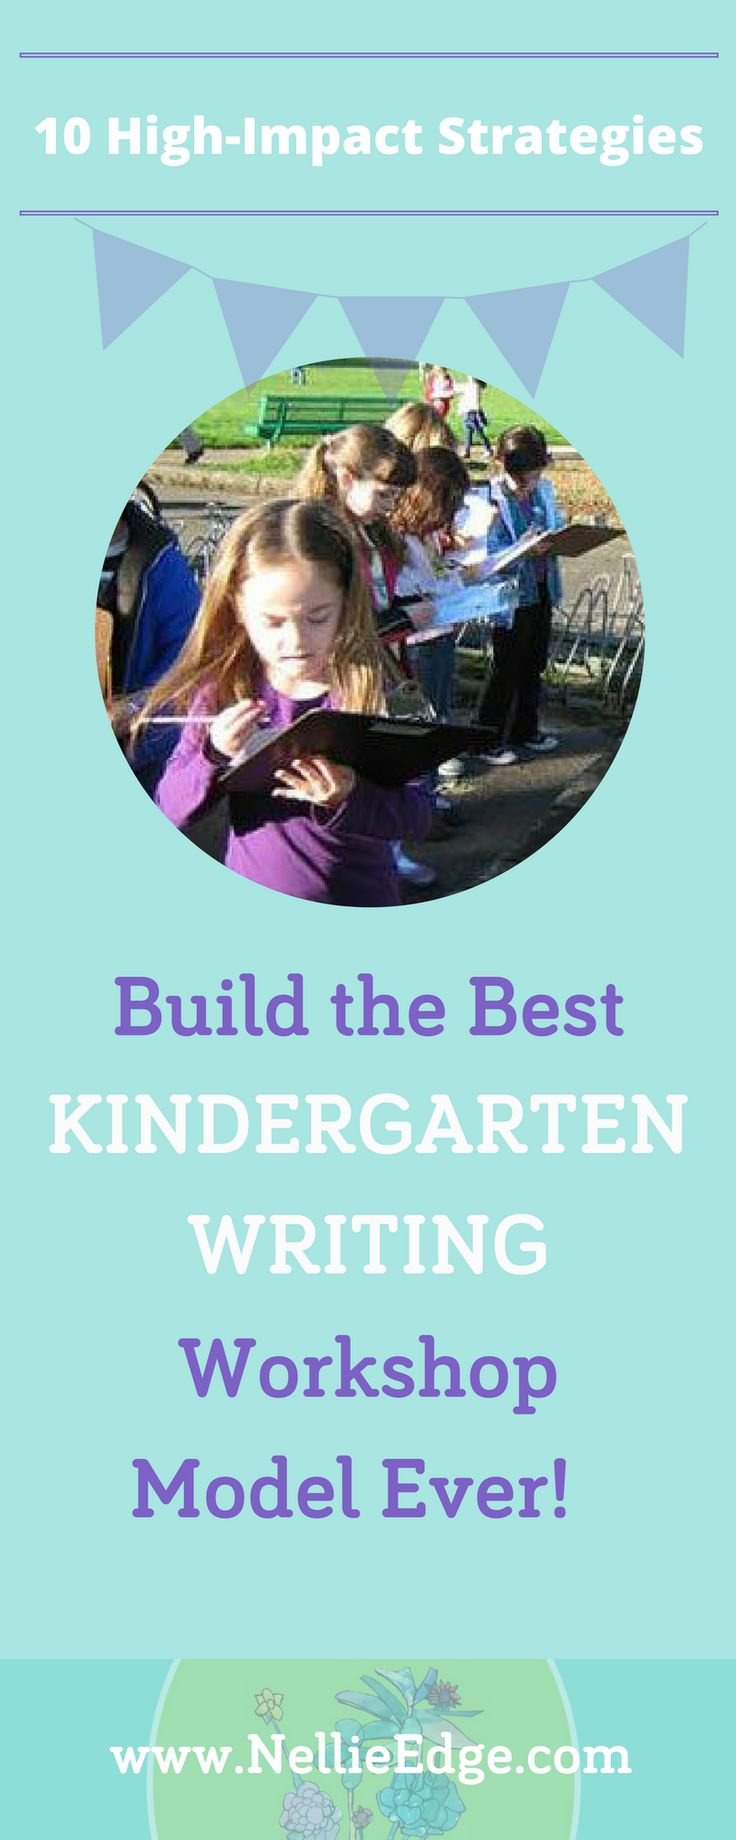 Build the Best Kindergarten Writing Workshop Model Ever! Use These 10 High-Impact Strategies: How do we differentiate instruction to simultaneously challenge and support diverse learners within the same kindergarten? How do we teach more intentionally, systematically, and create joyful pathways to the Common Core Standards? Learn more at http://nellieedge.com/kindergarten-writing-practices/ | Nellie Edge's Kindergarten Writing and the Common Core